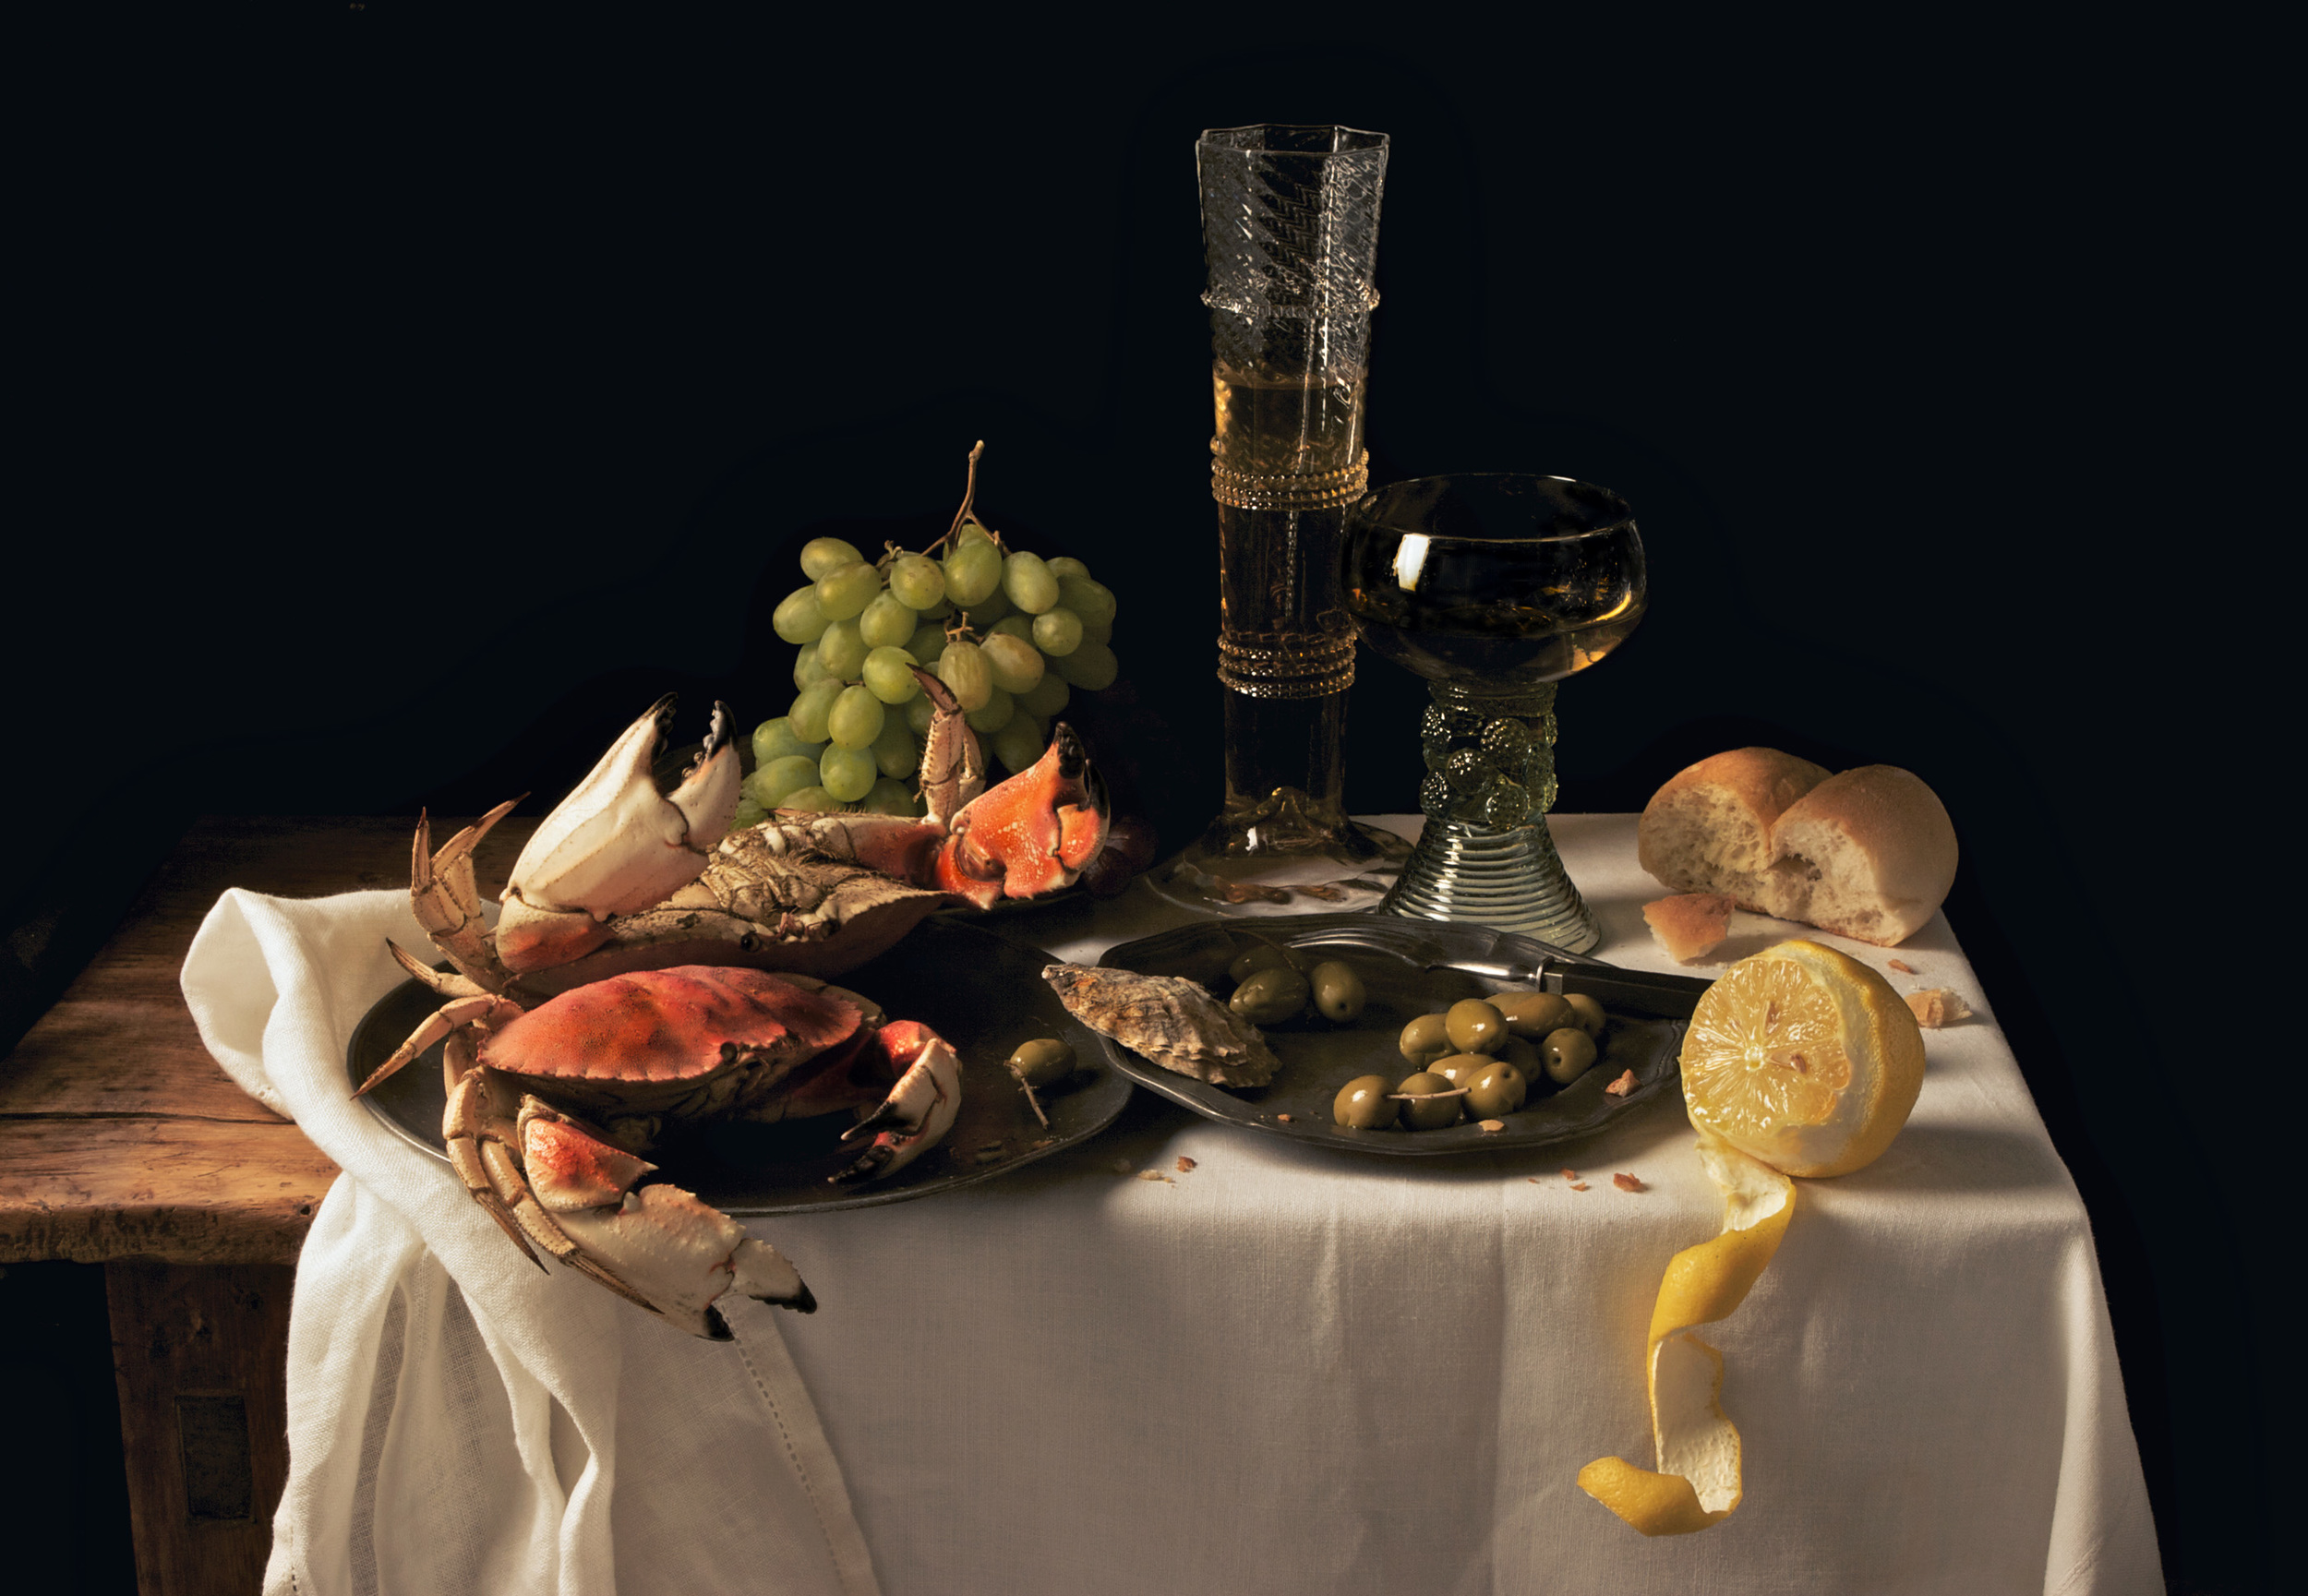 Crabs and Lemon, After P.C., 2009